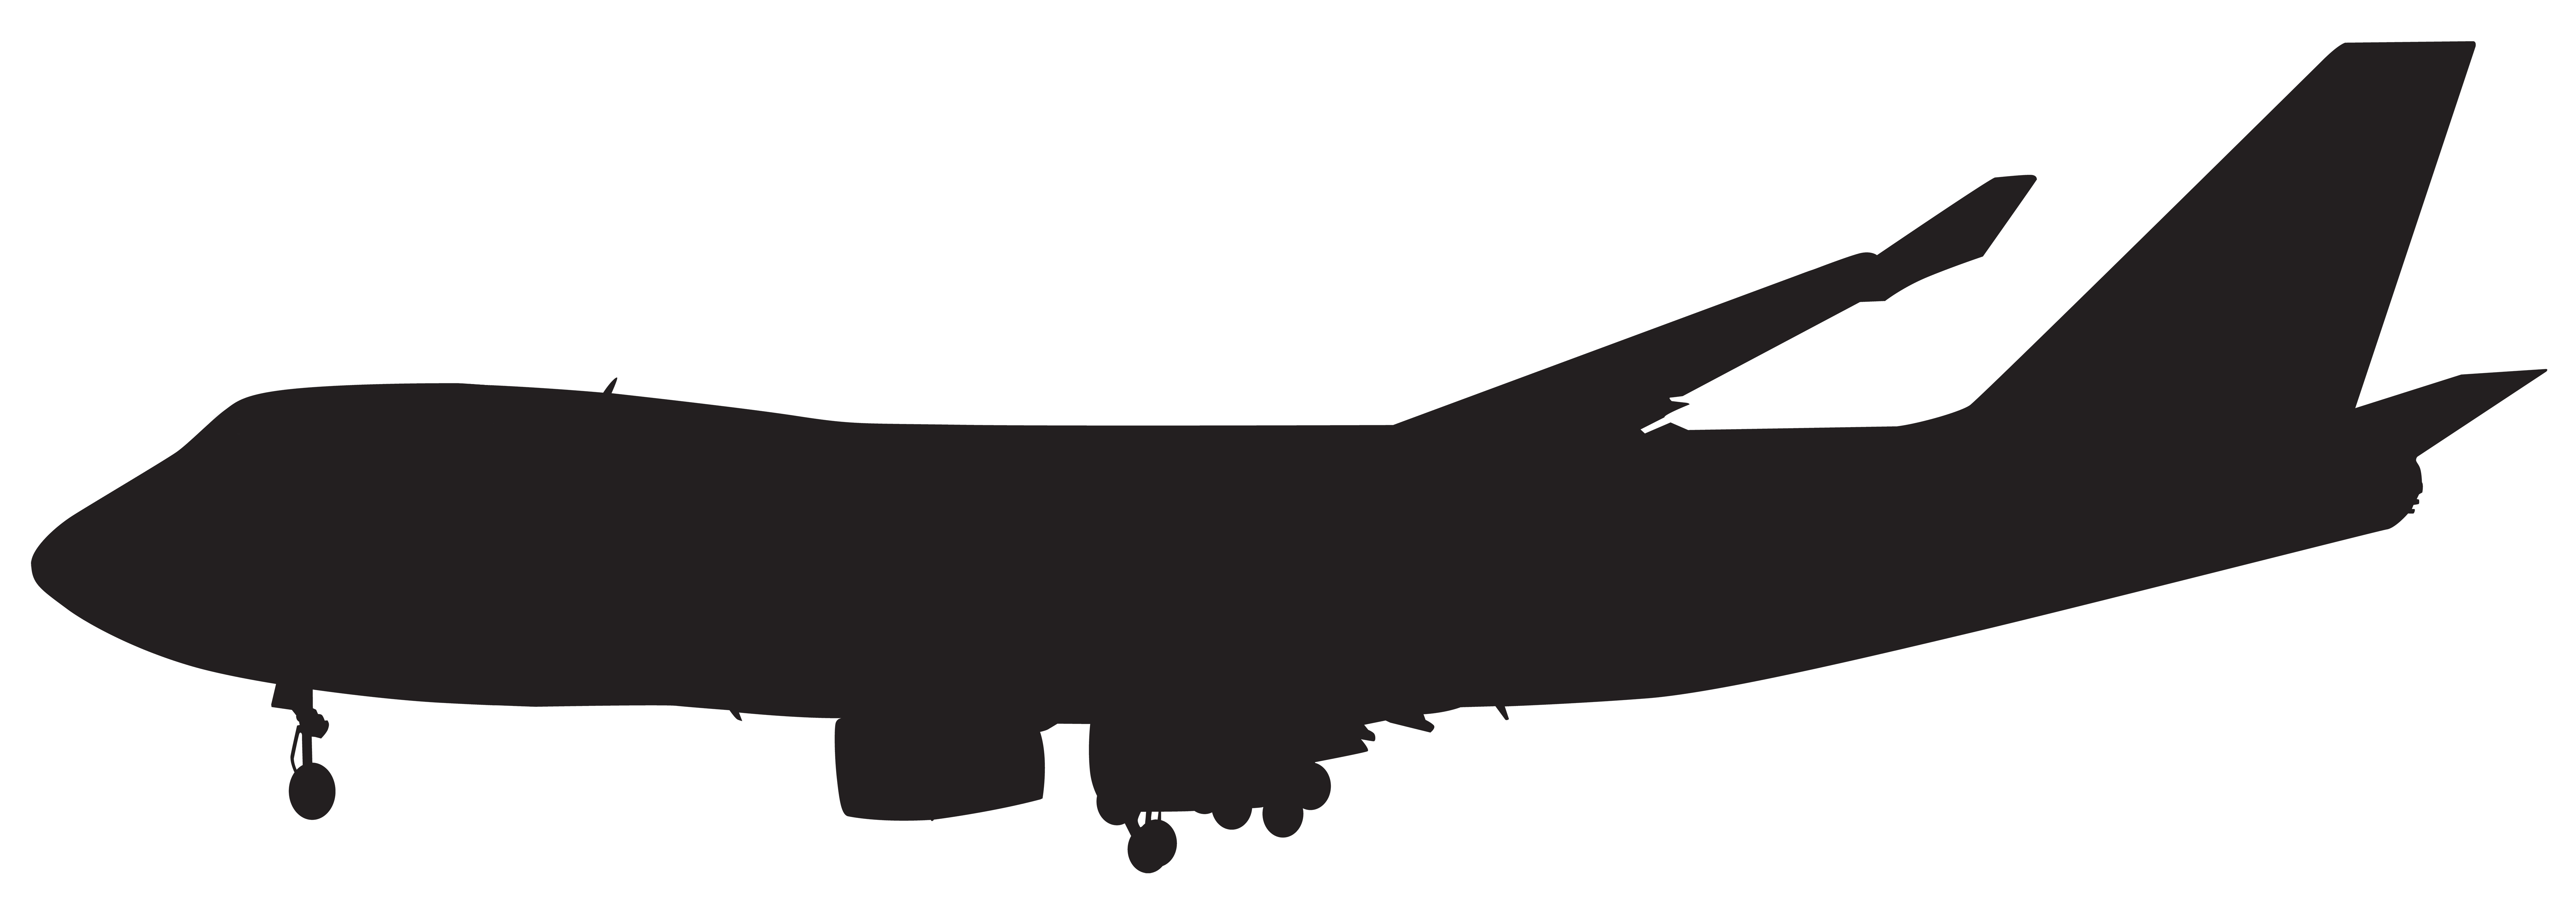 Airplane silhouette png. Clip art gallery yopriceville